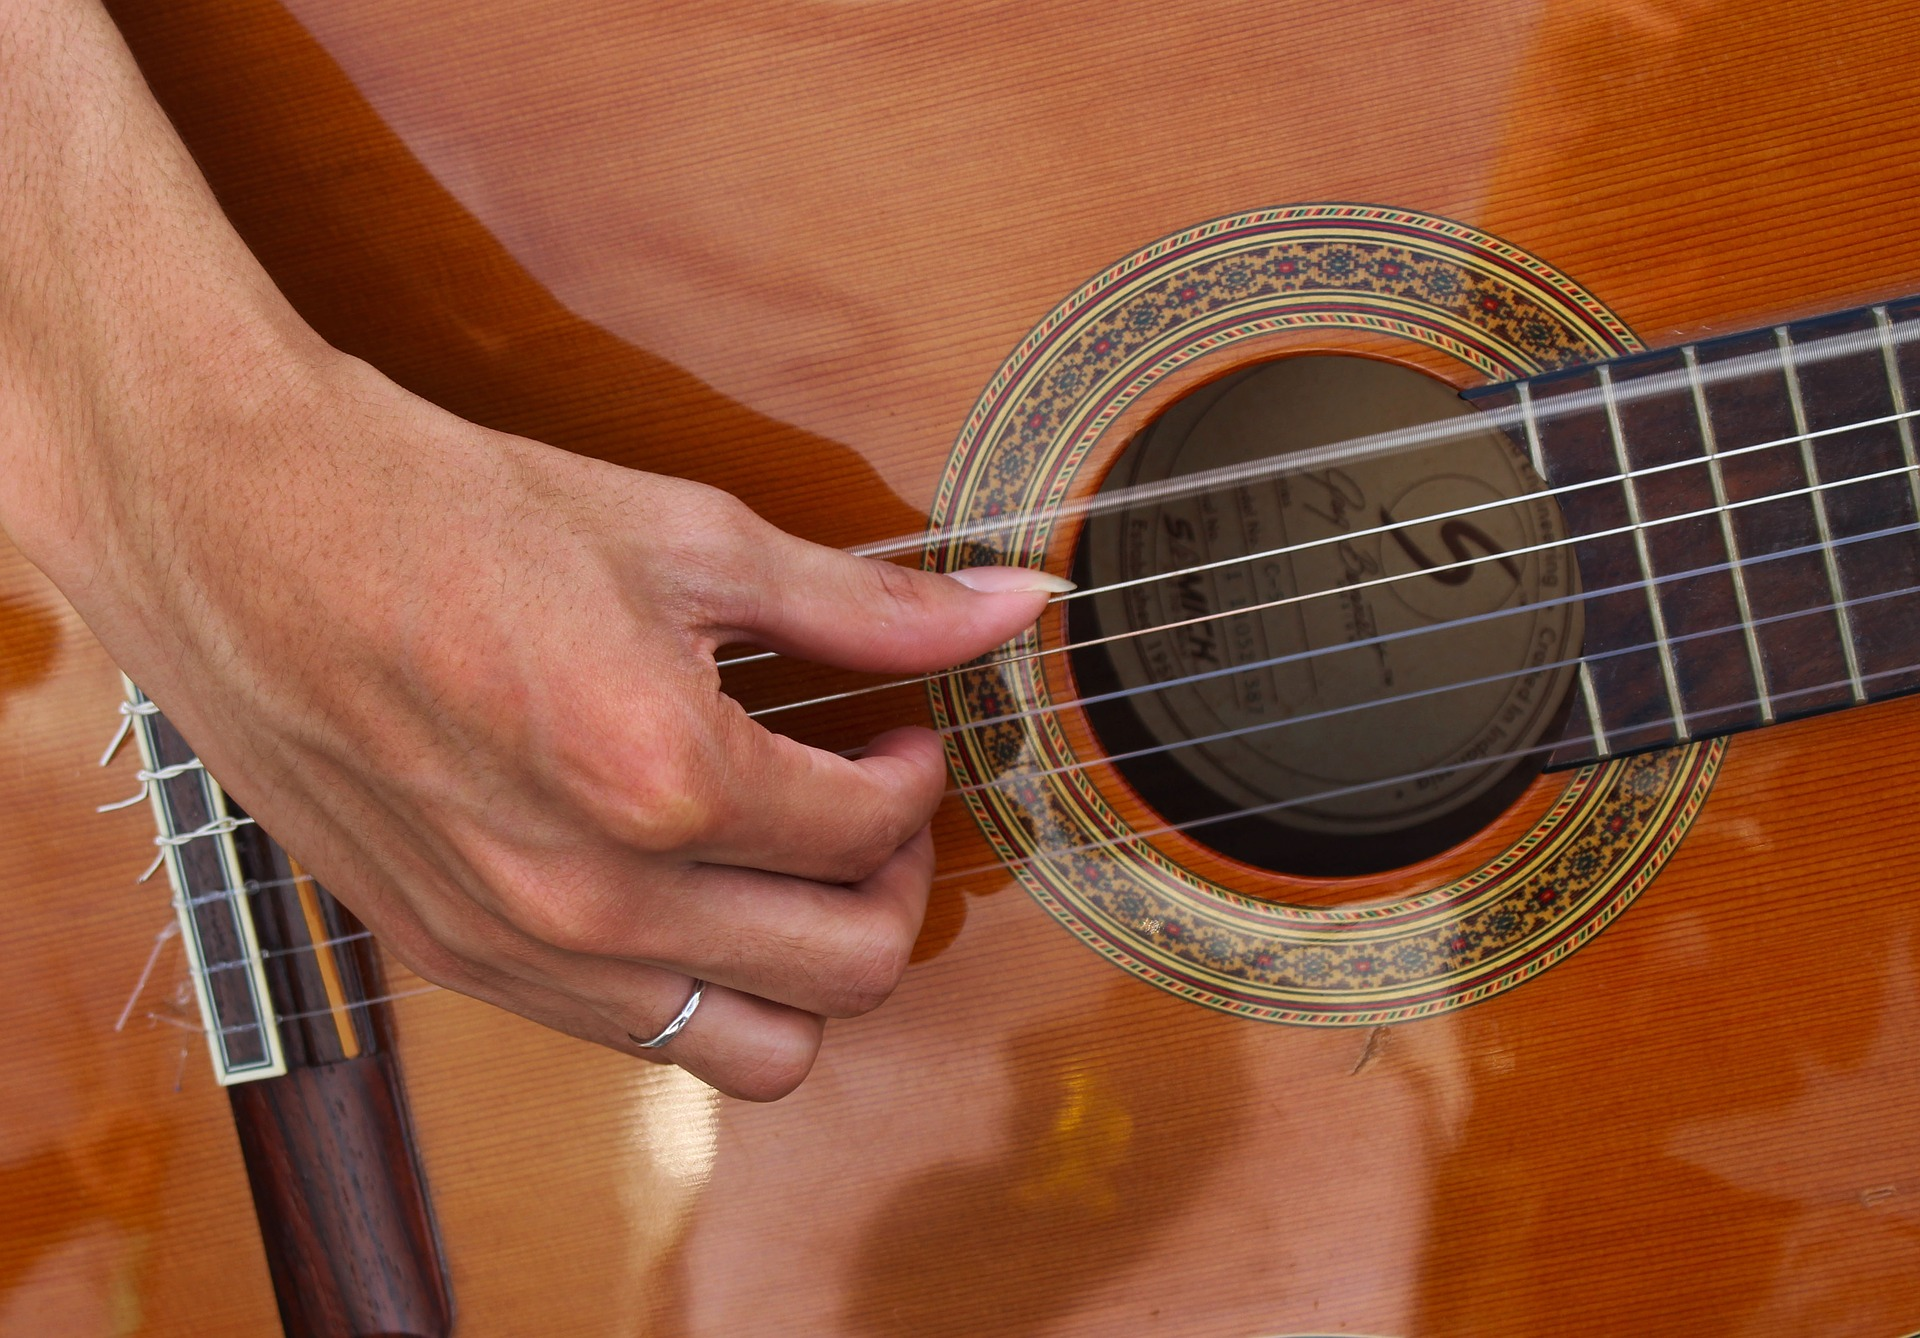 'Playing a guitar' image: